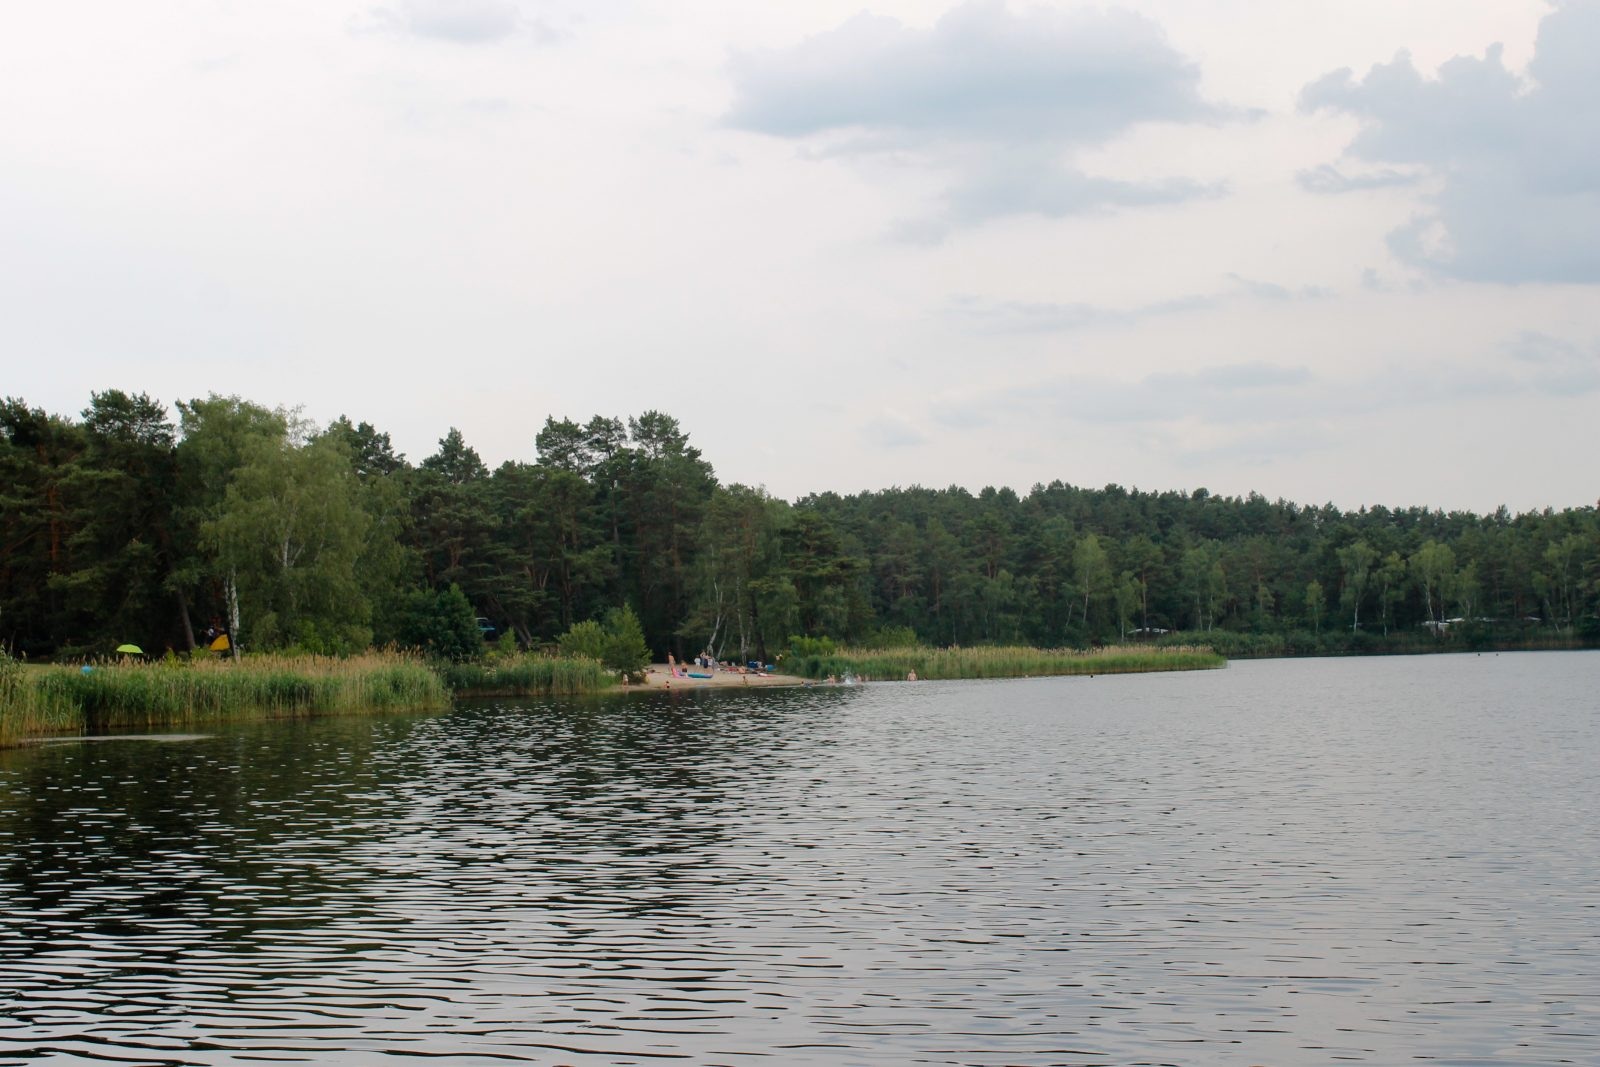 A view over Tonsee lake to a public lido.